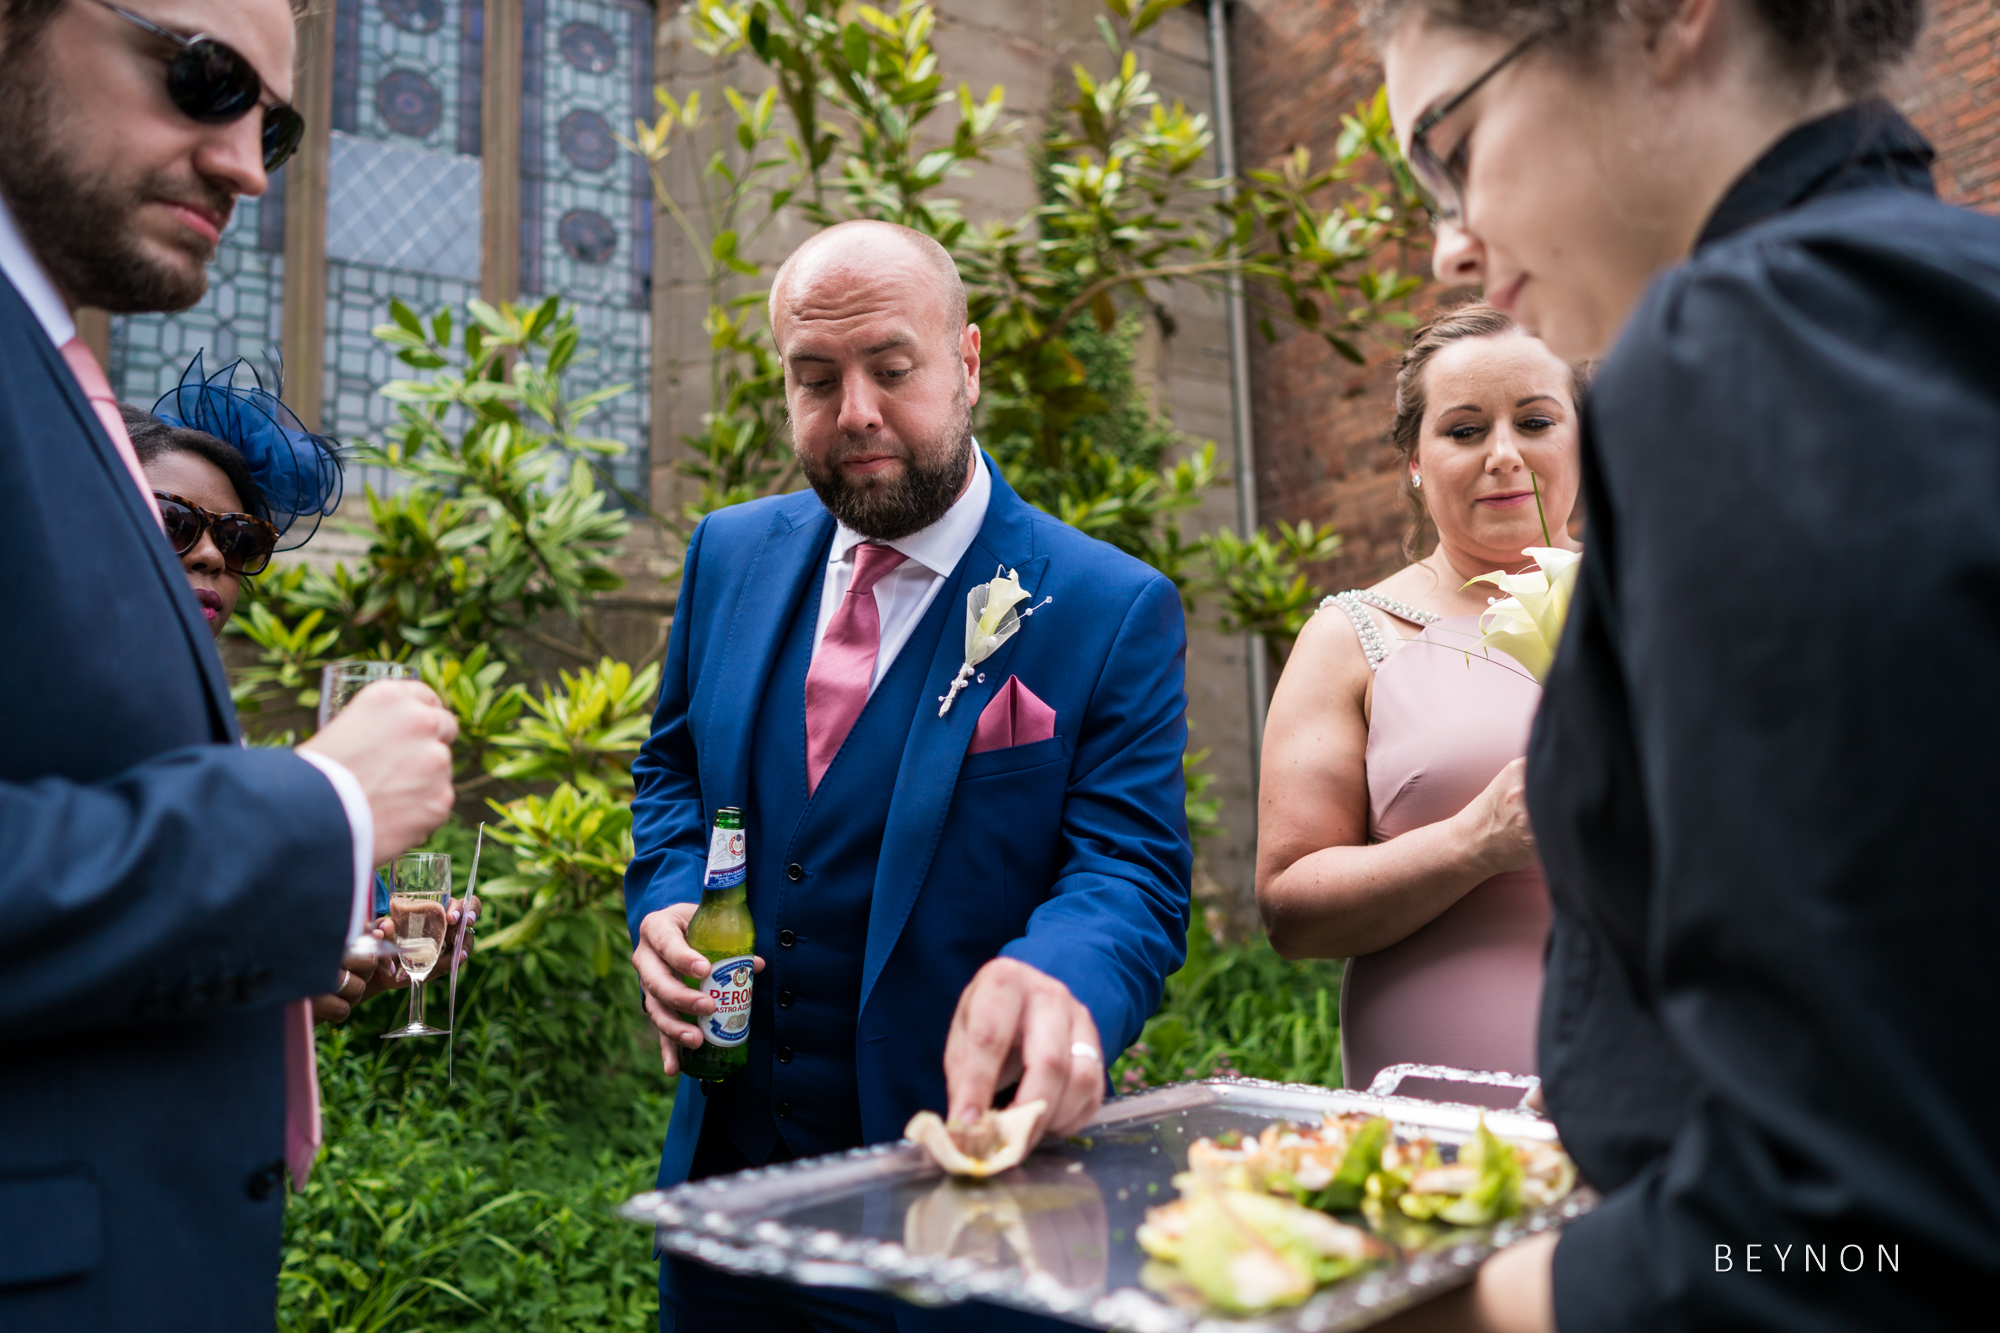 The best man takes a canape